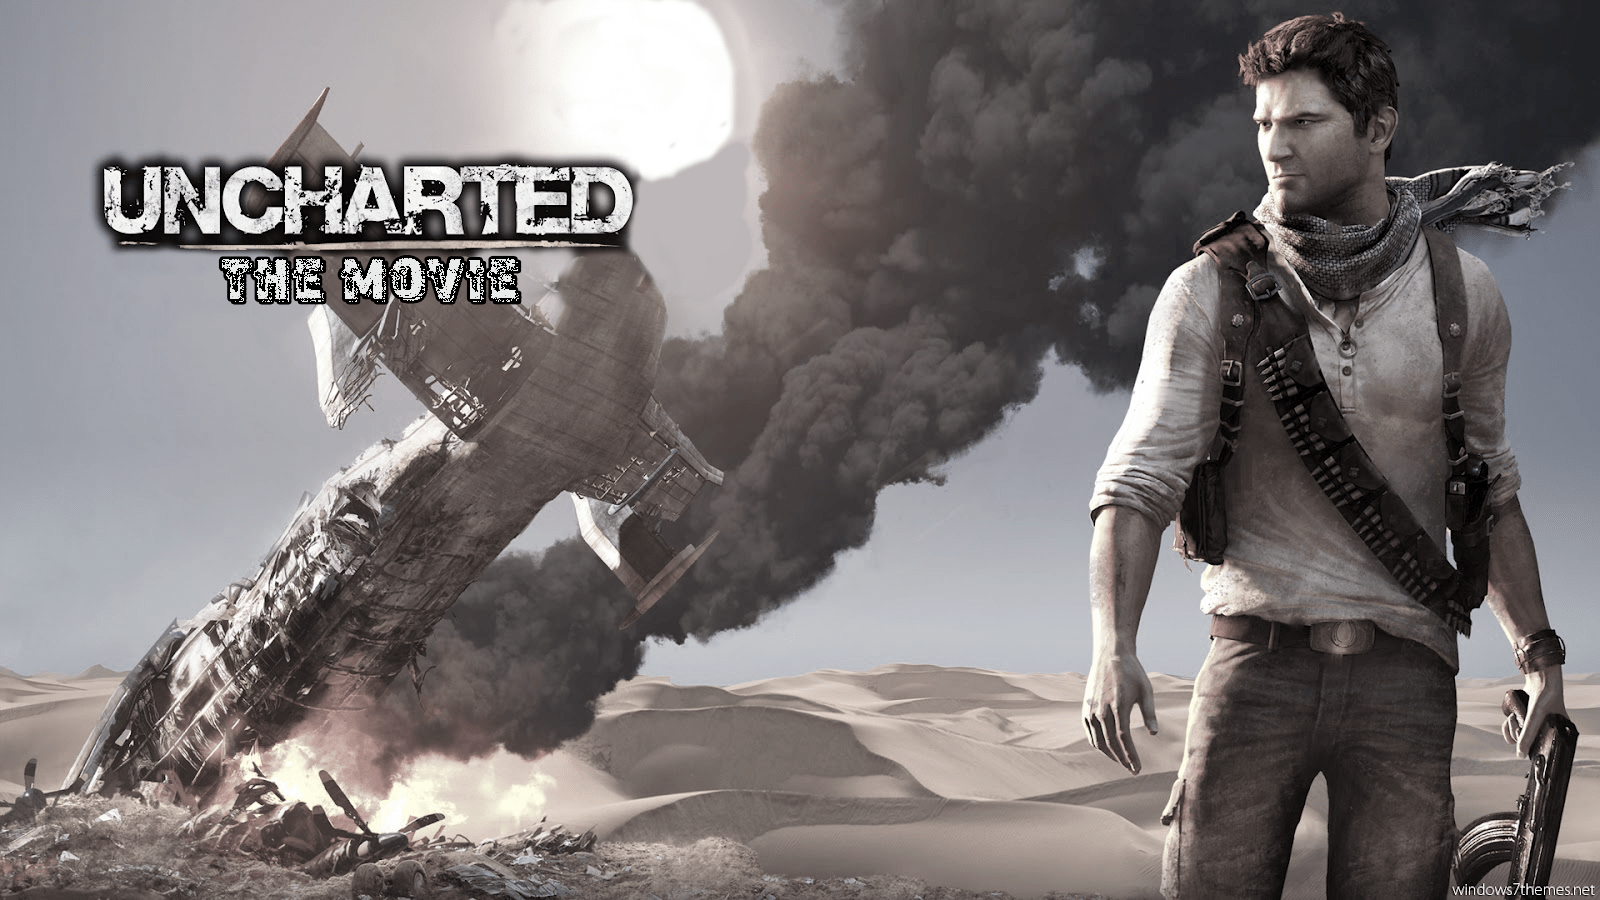 uncharted-The movie